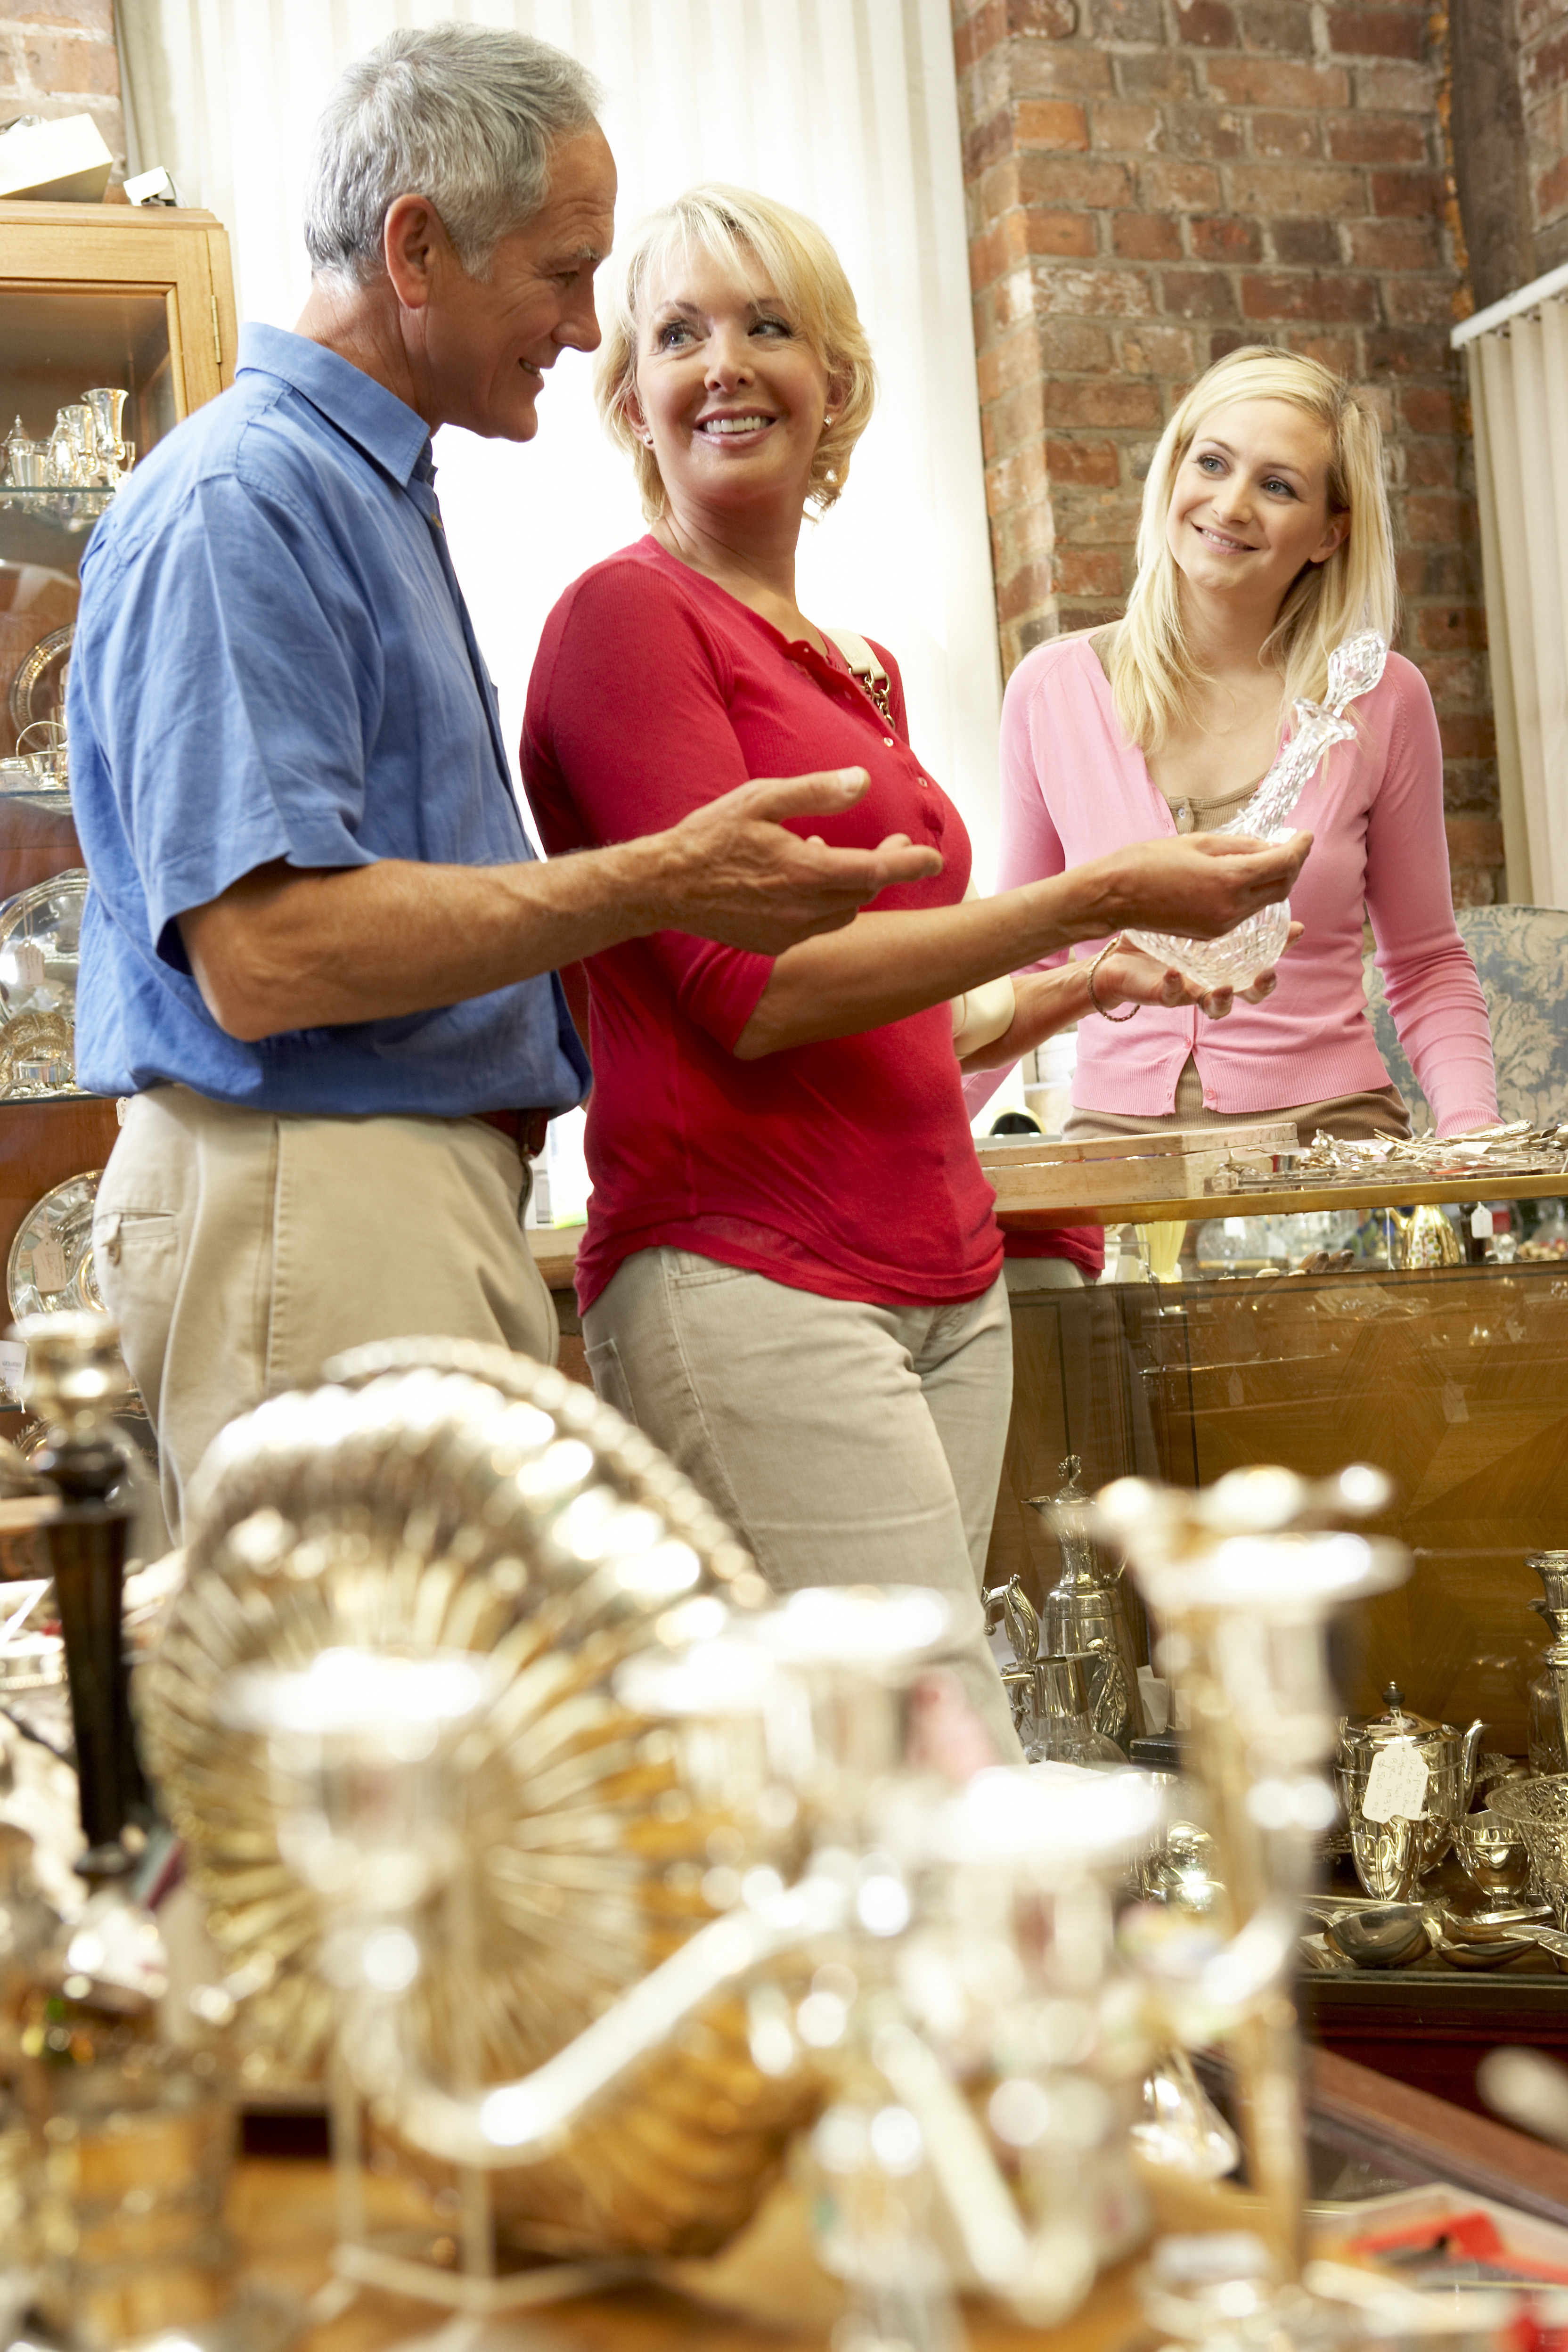 Antique Furniture Columbia Sc Inspirational Antique Shopping In the Columbia Sc area – Discover Columbia